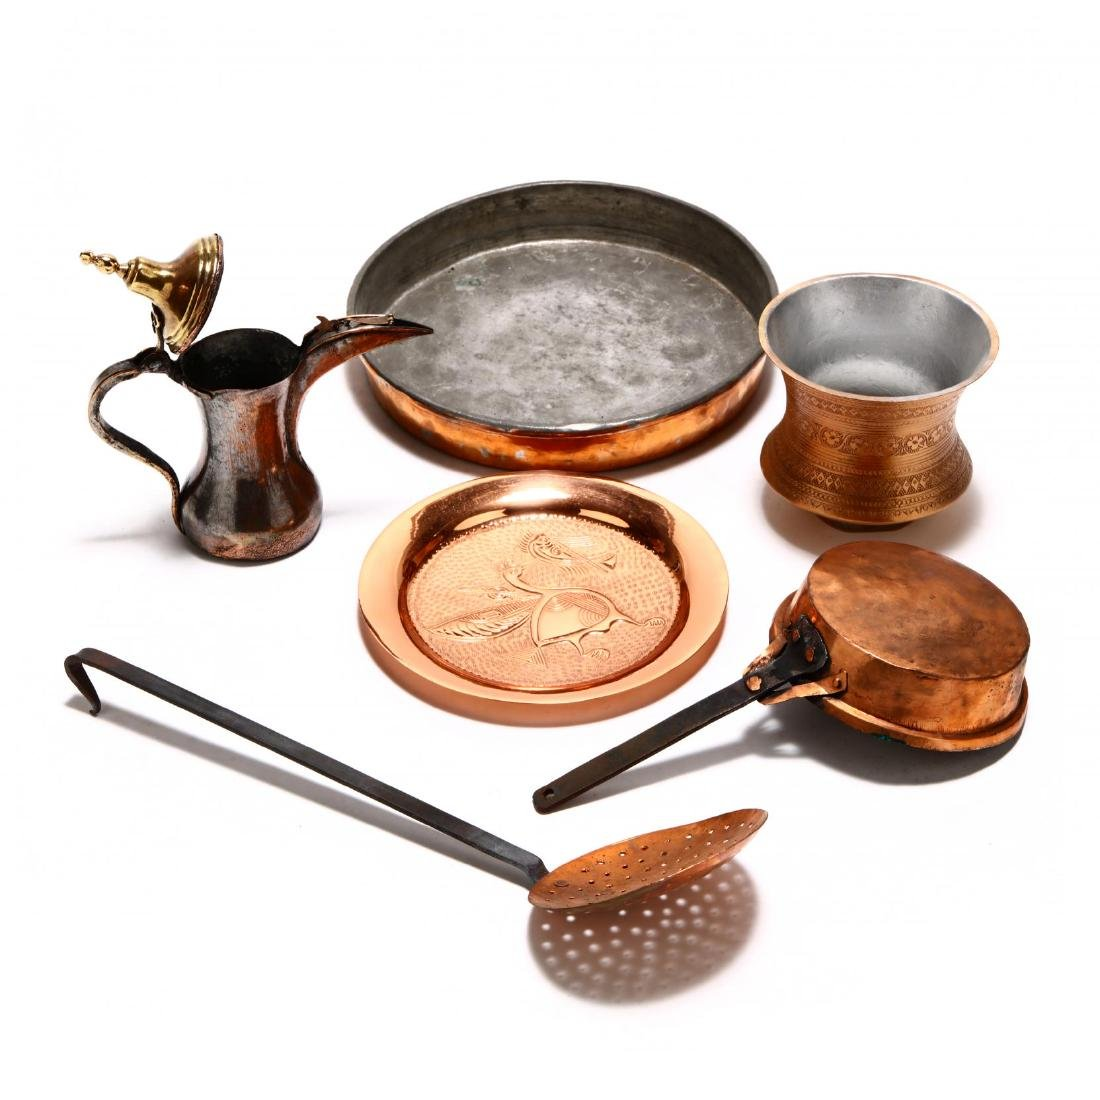 Group of Copper and Metal Kitchenware - 3